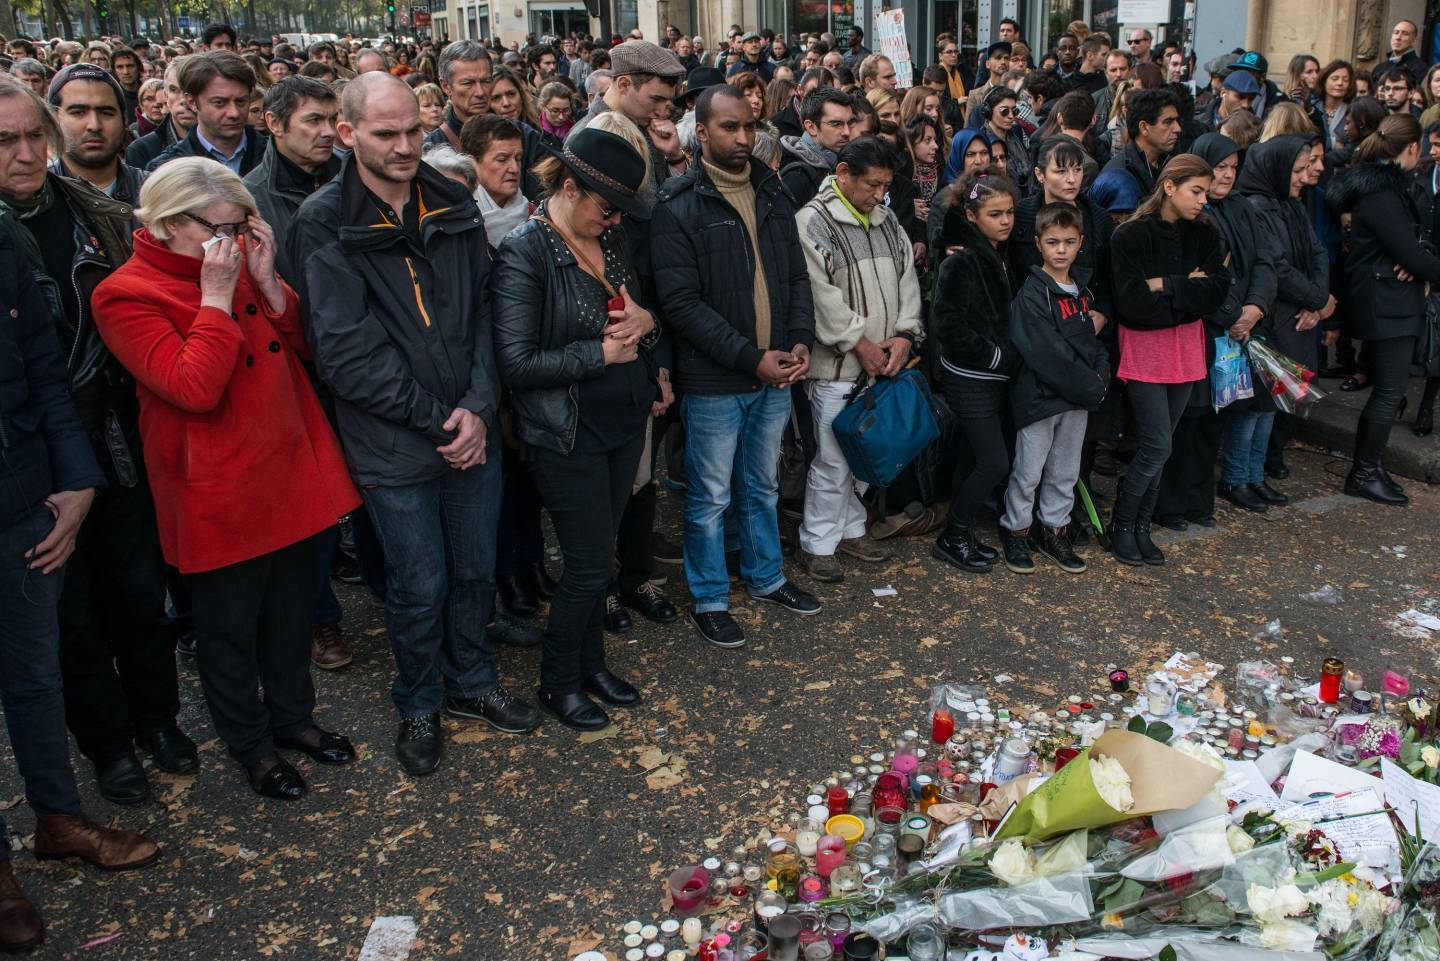 People observe a minute of silence near the Bataclan concert hall.